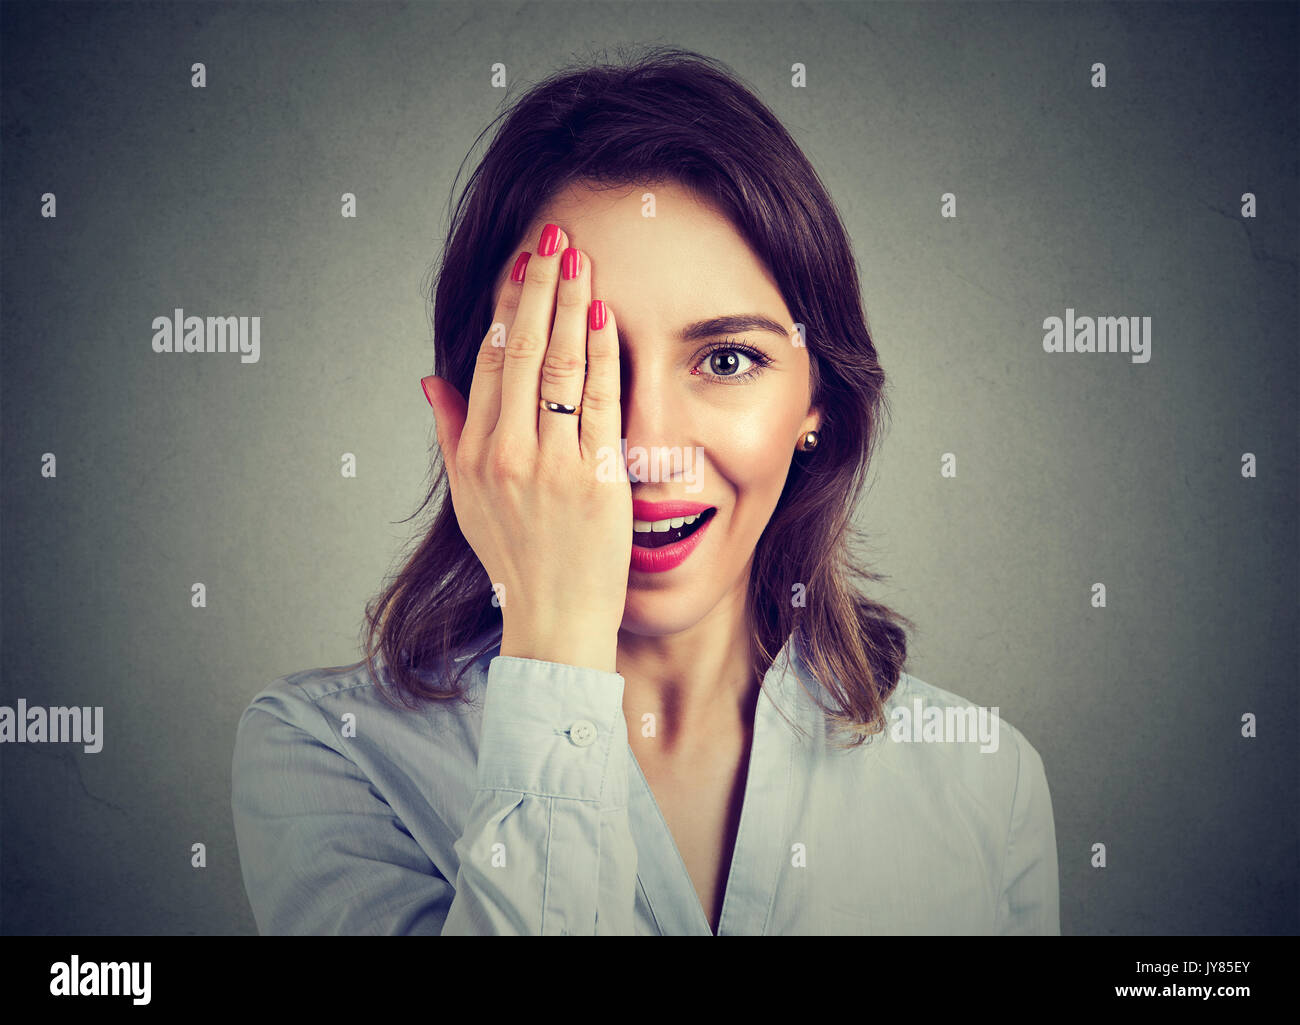 Portrait of young surprised woman covering half face with her hand - Stock Image